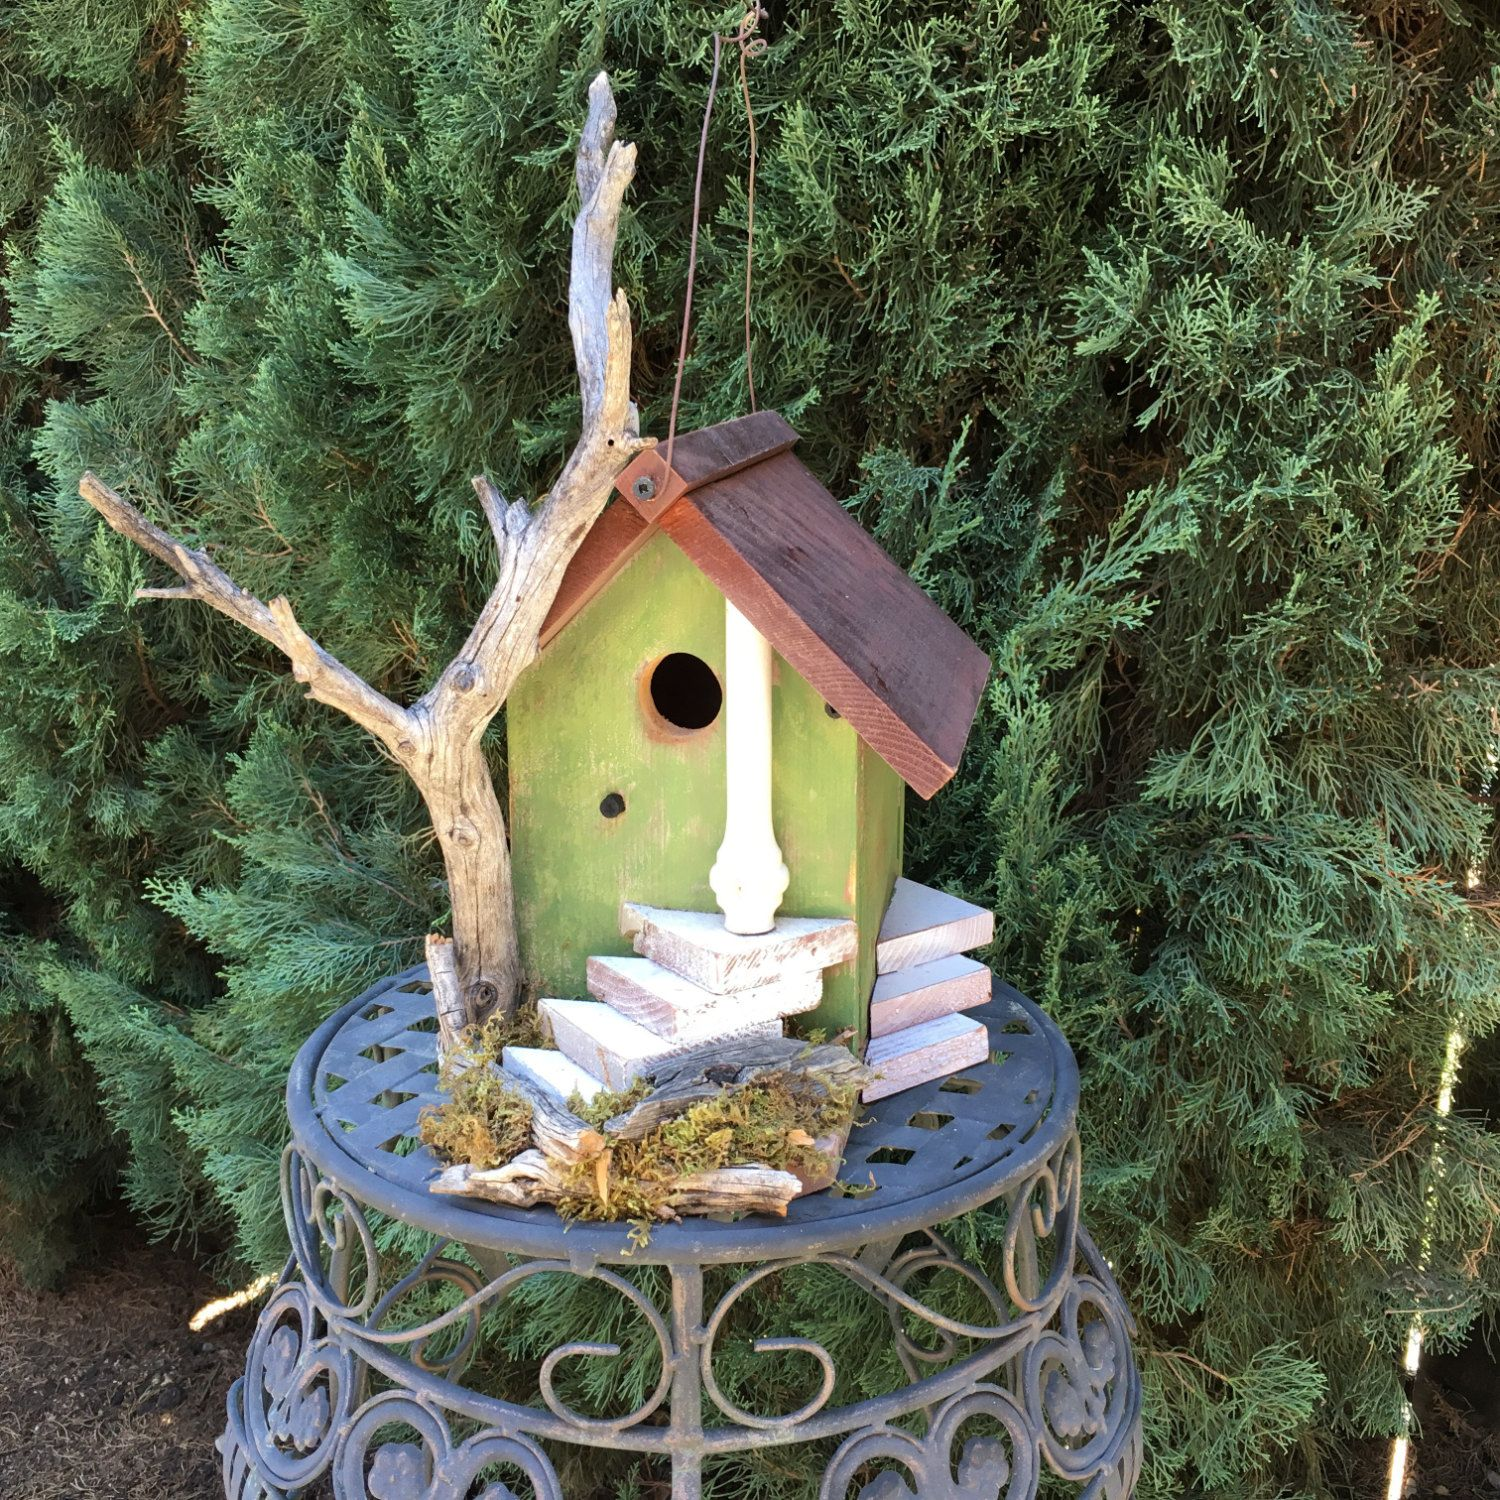 Rustic Wood Birdhouse Functional Unique With Natural Etsy Wood Birdhouses Handmade Birdhouses Unique Bird Houses